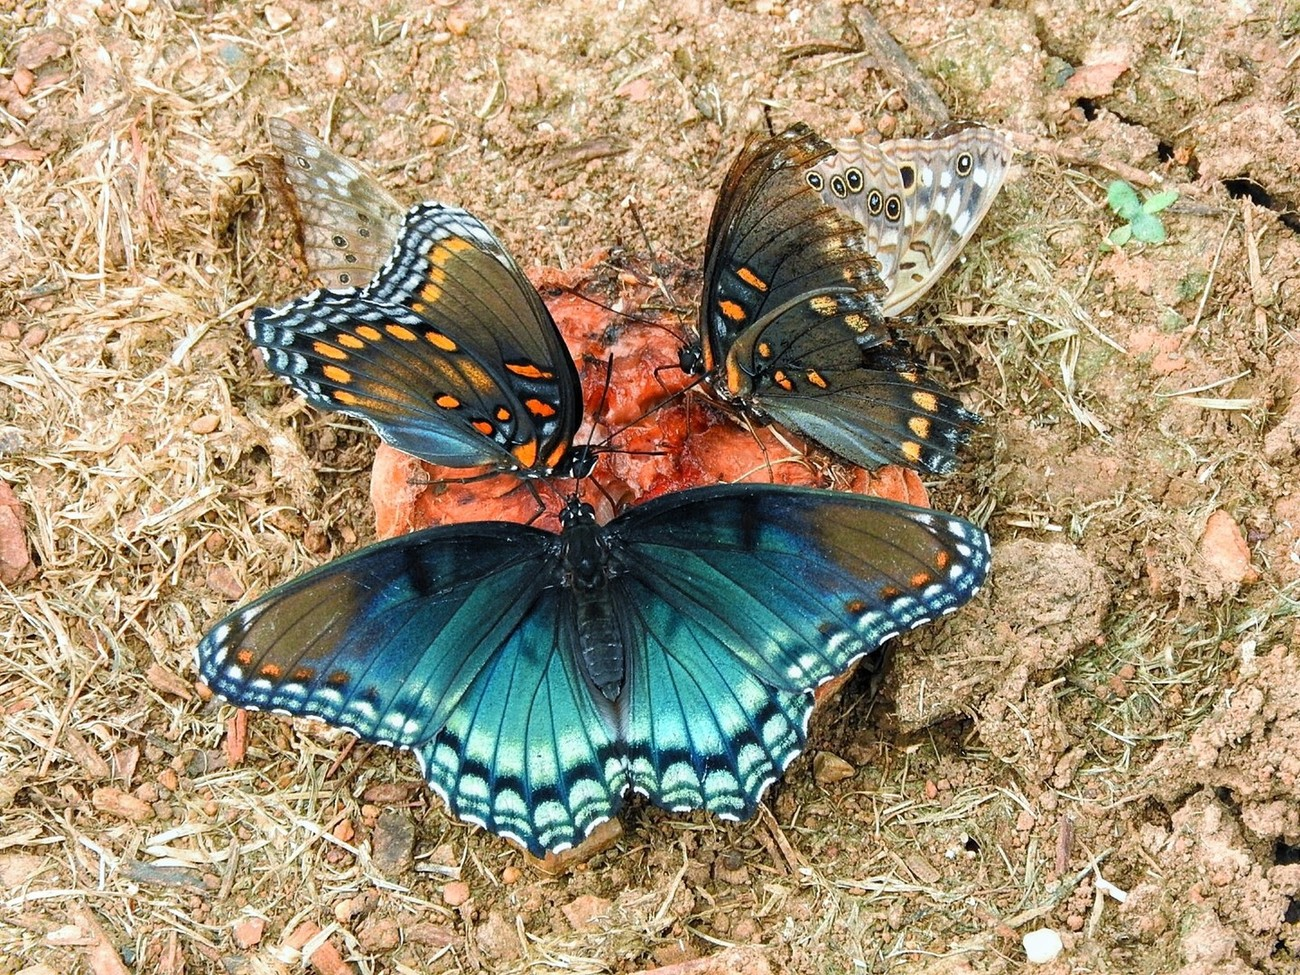 4 butterflies in the garden snacking on an old rotting peach